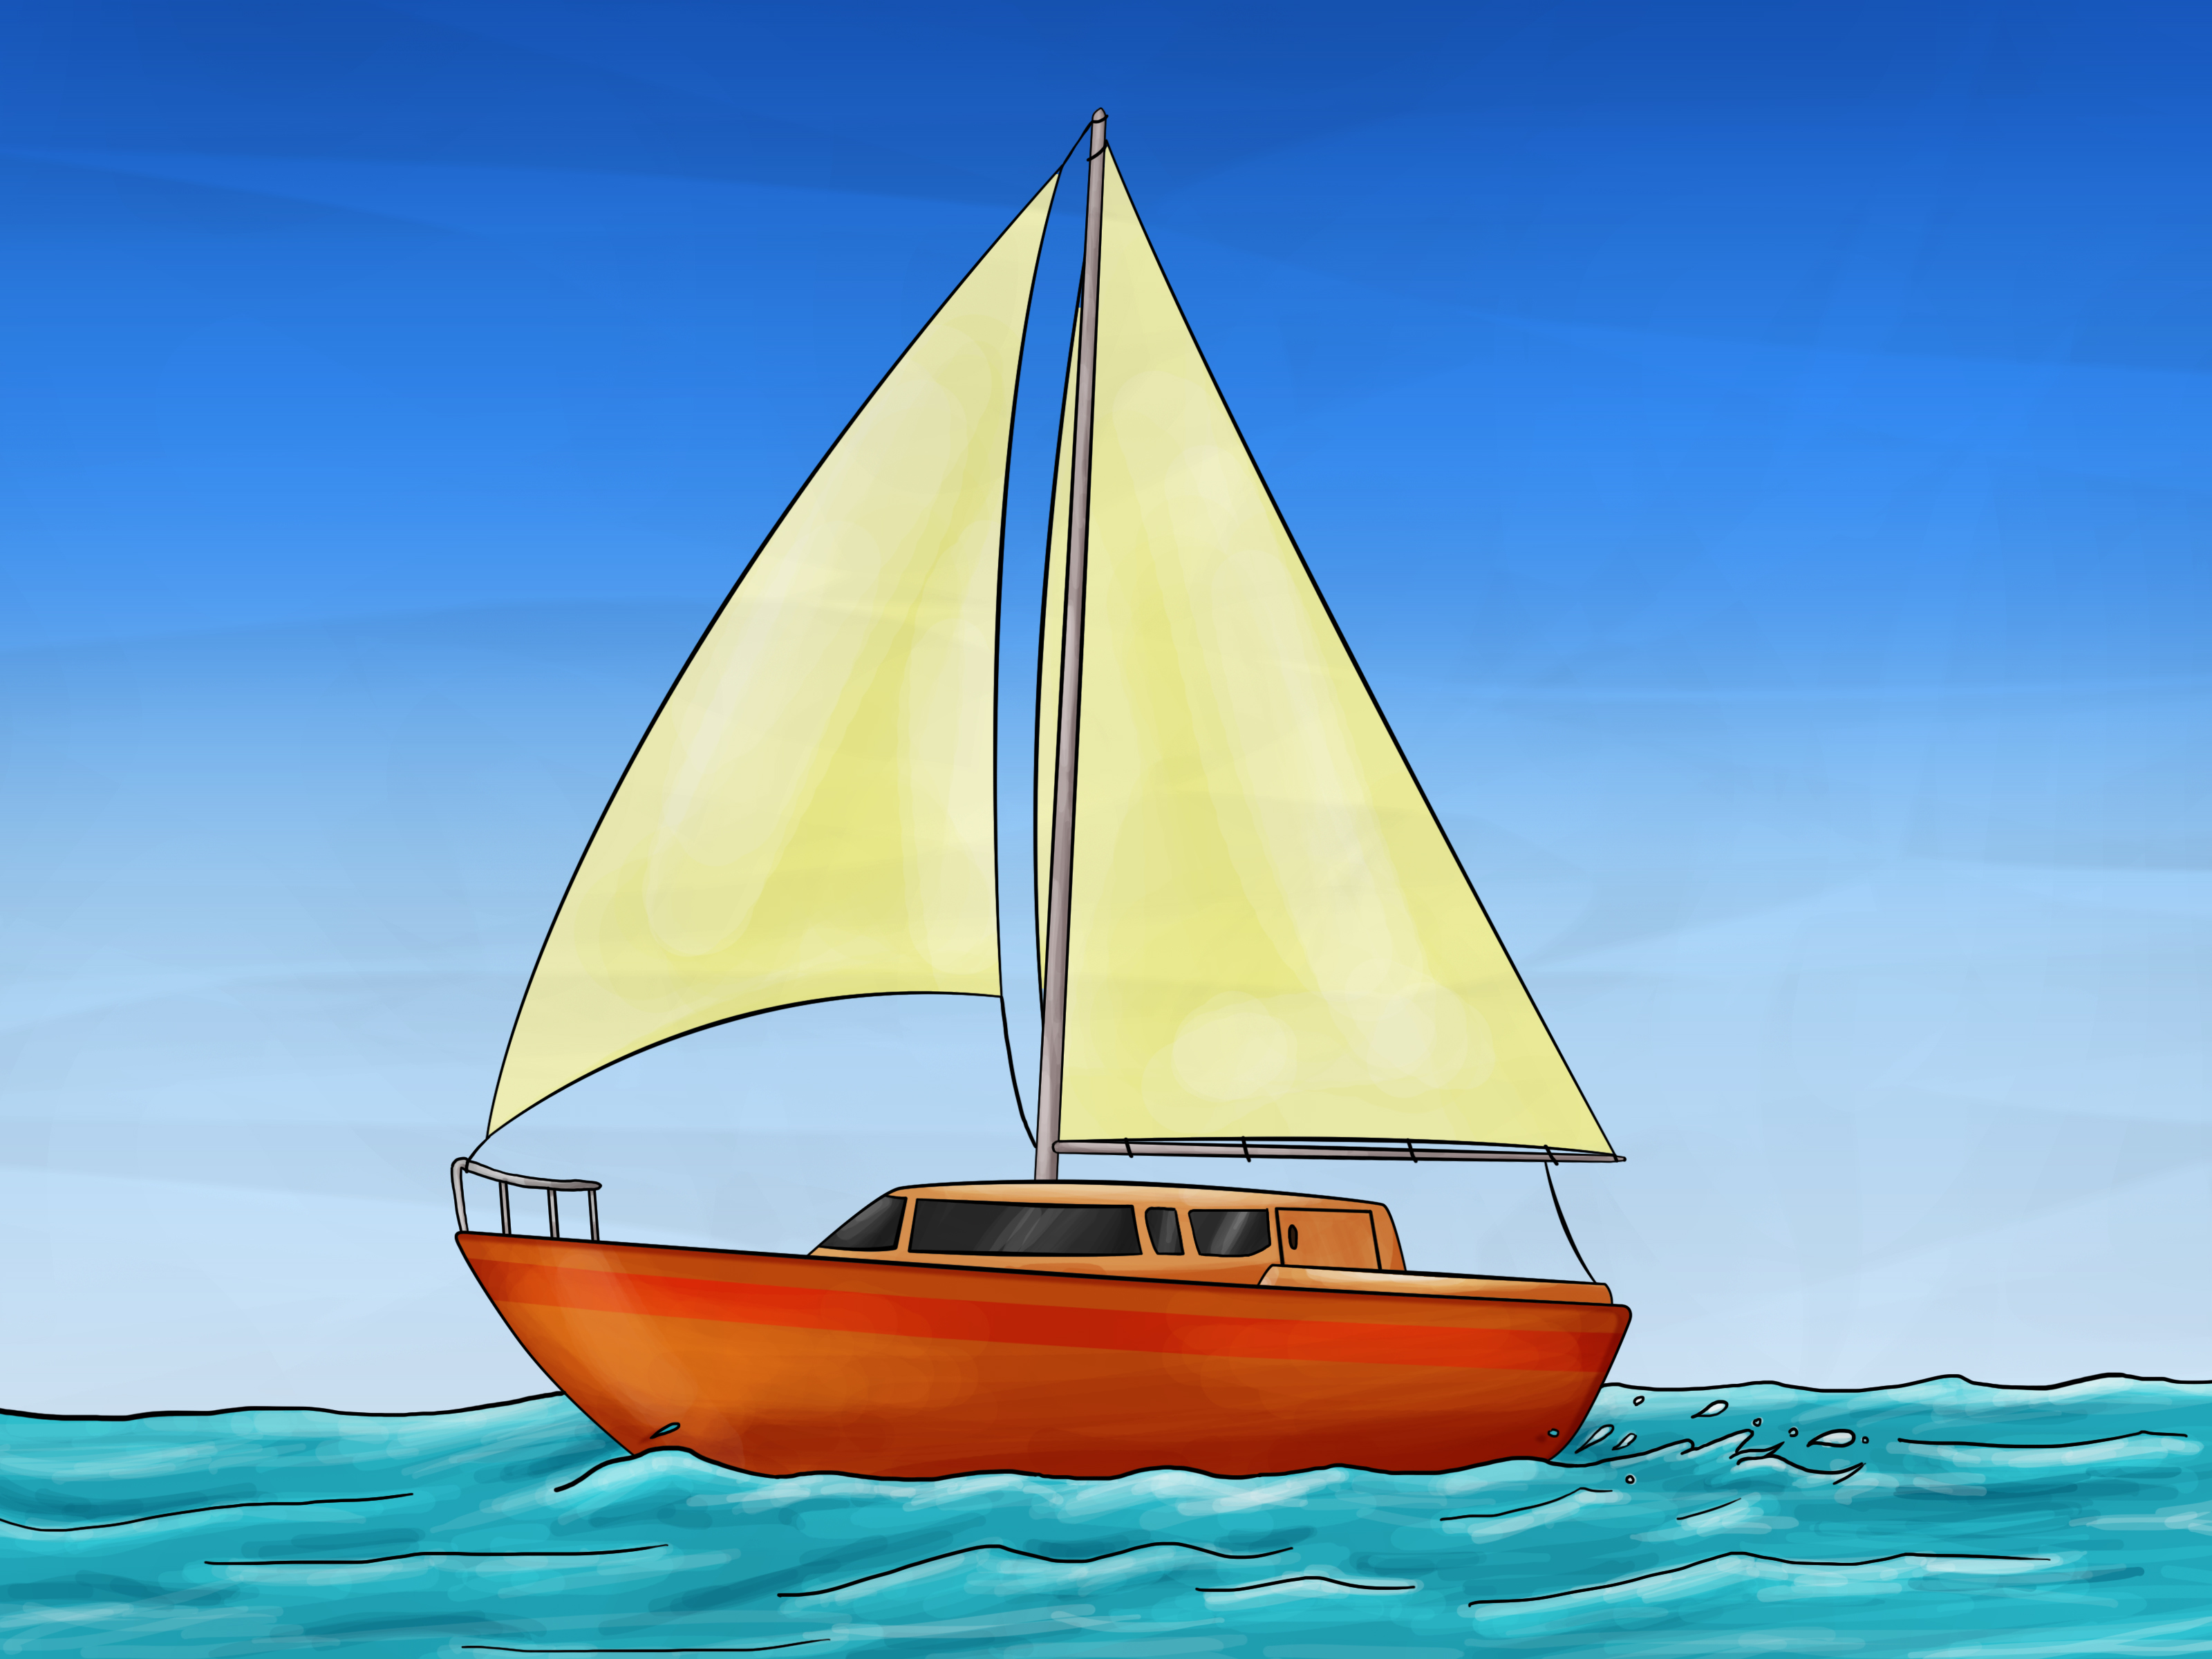 How to Draw a Sailboat: 7 Steps (with Pictures) - wikiHow